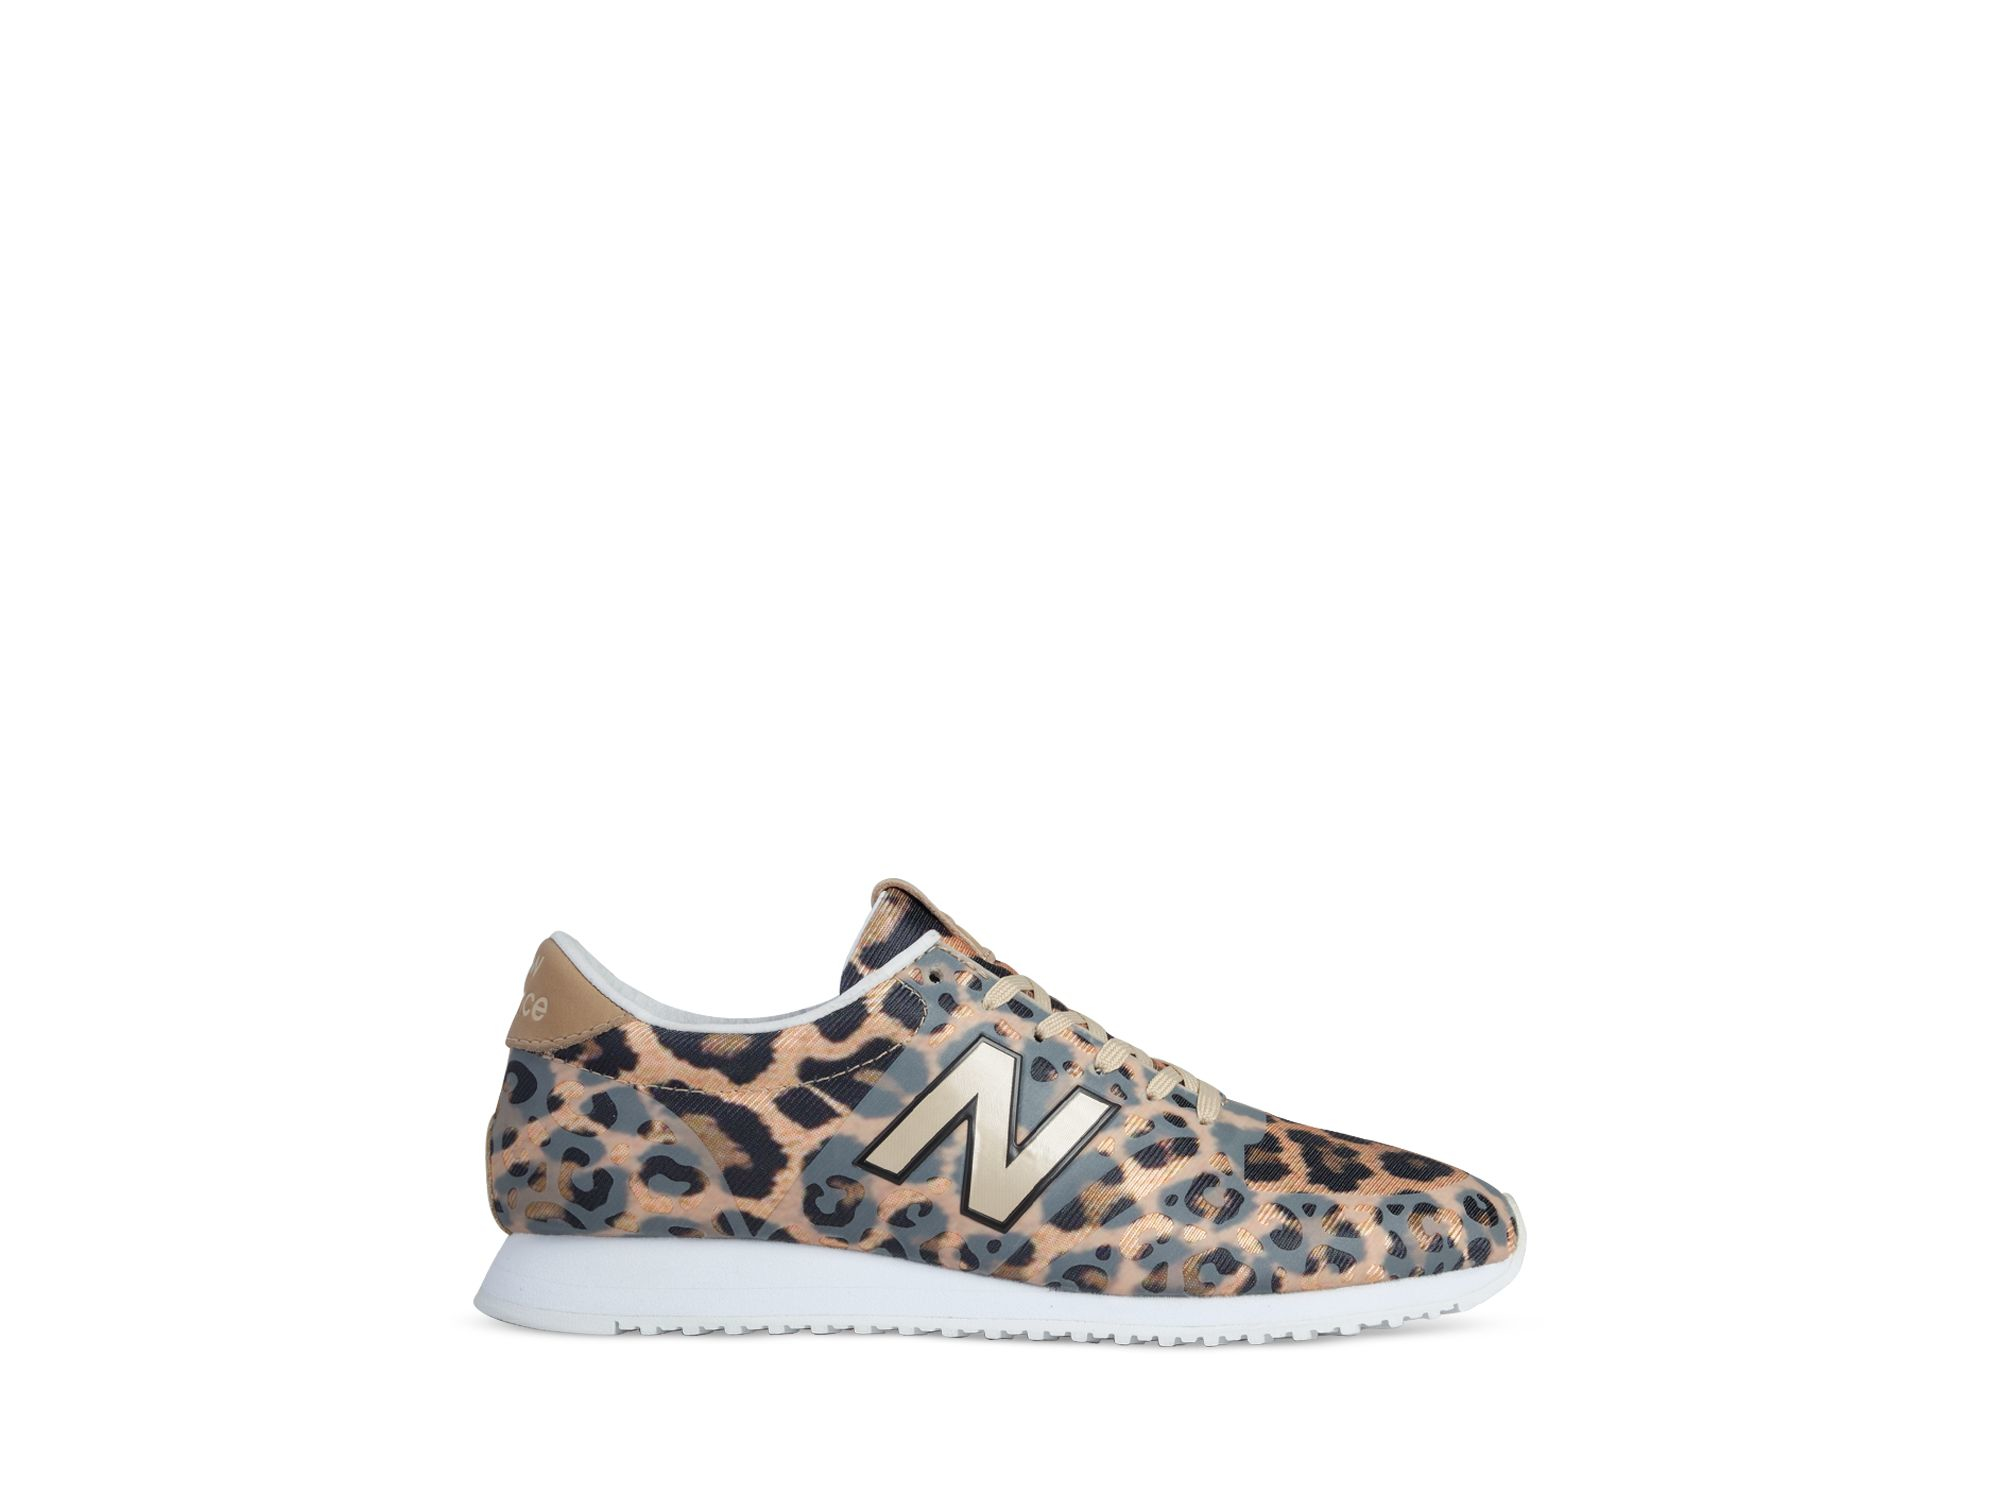 new balance leopard print 420 sneakers lyst. Black Bedroom Furniture Sets. Home Design Ideas